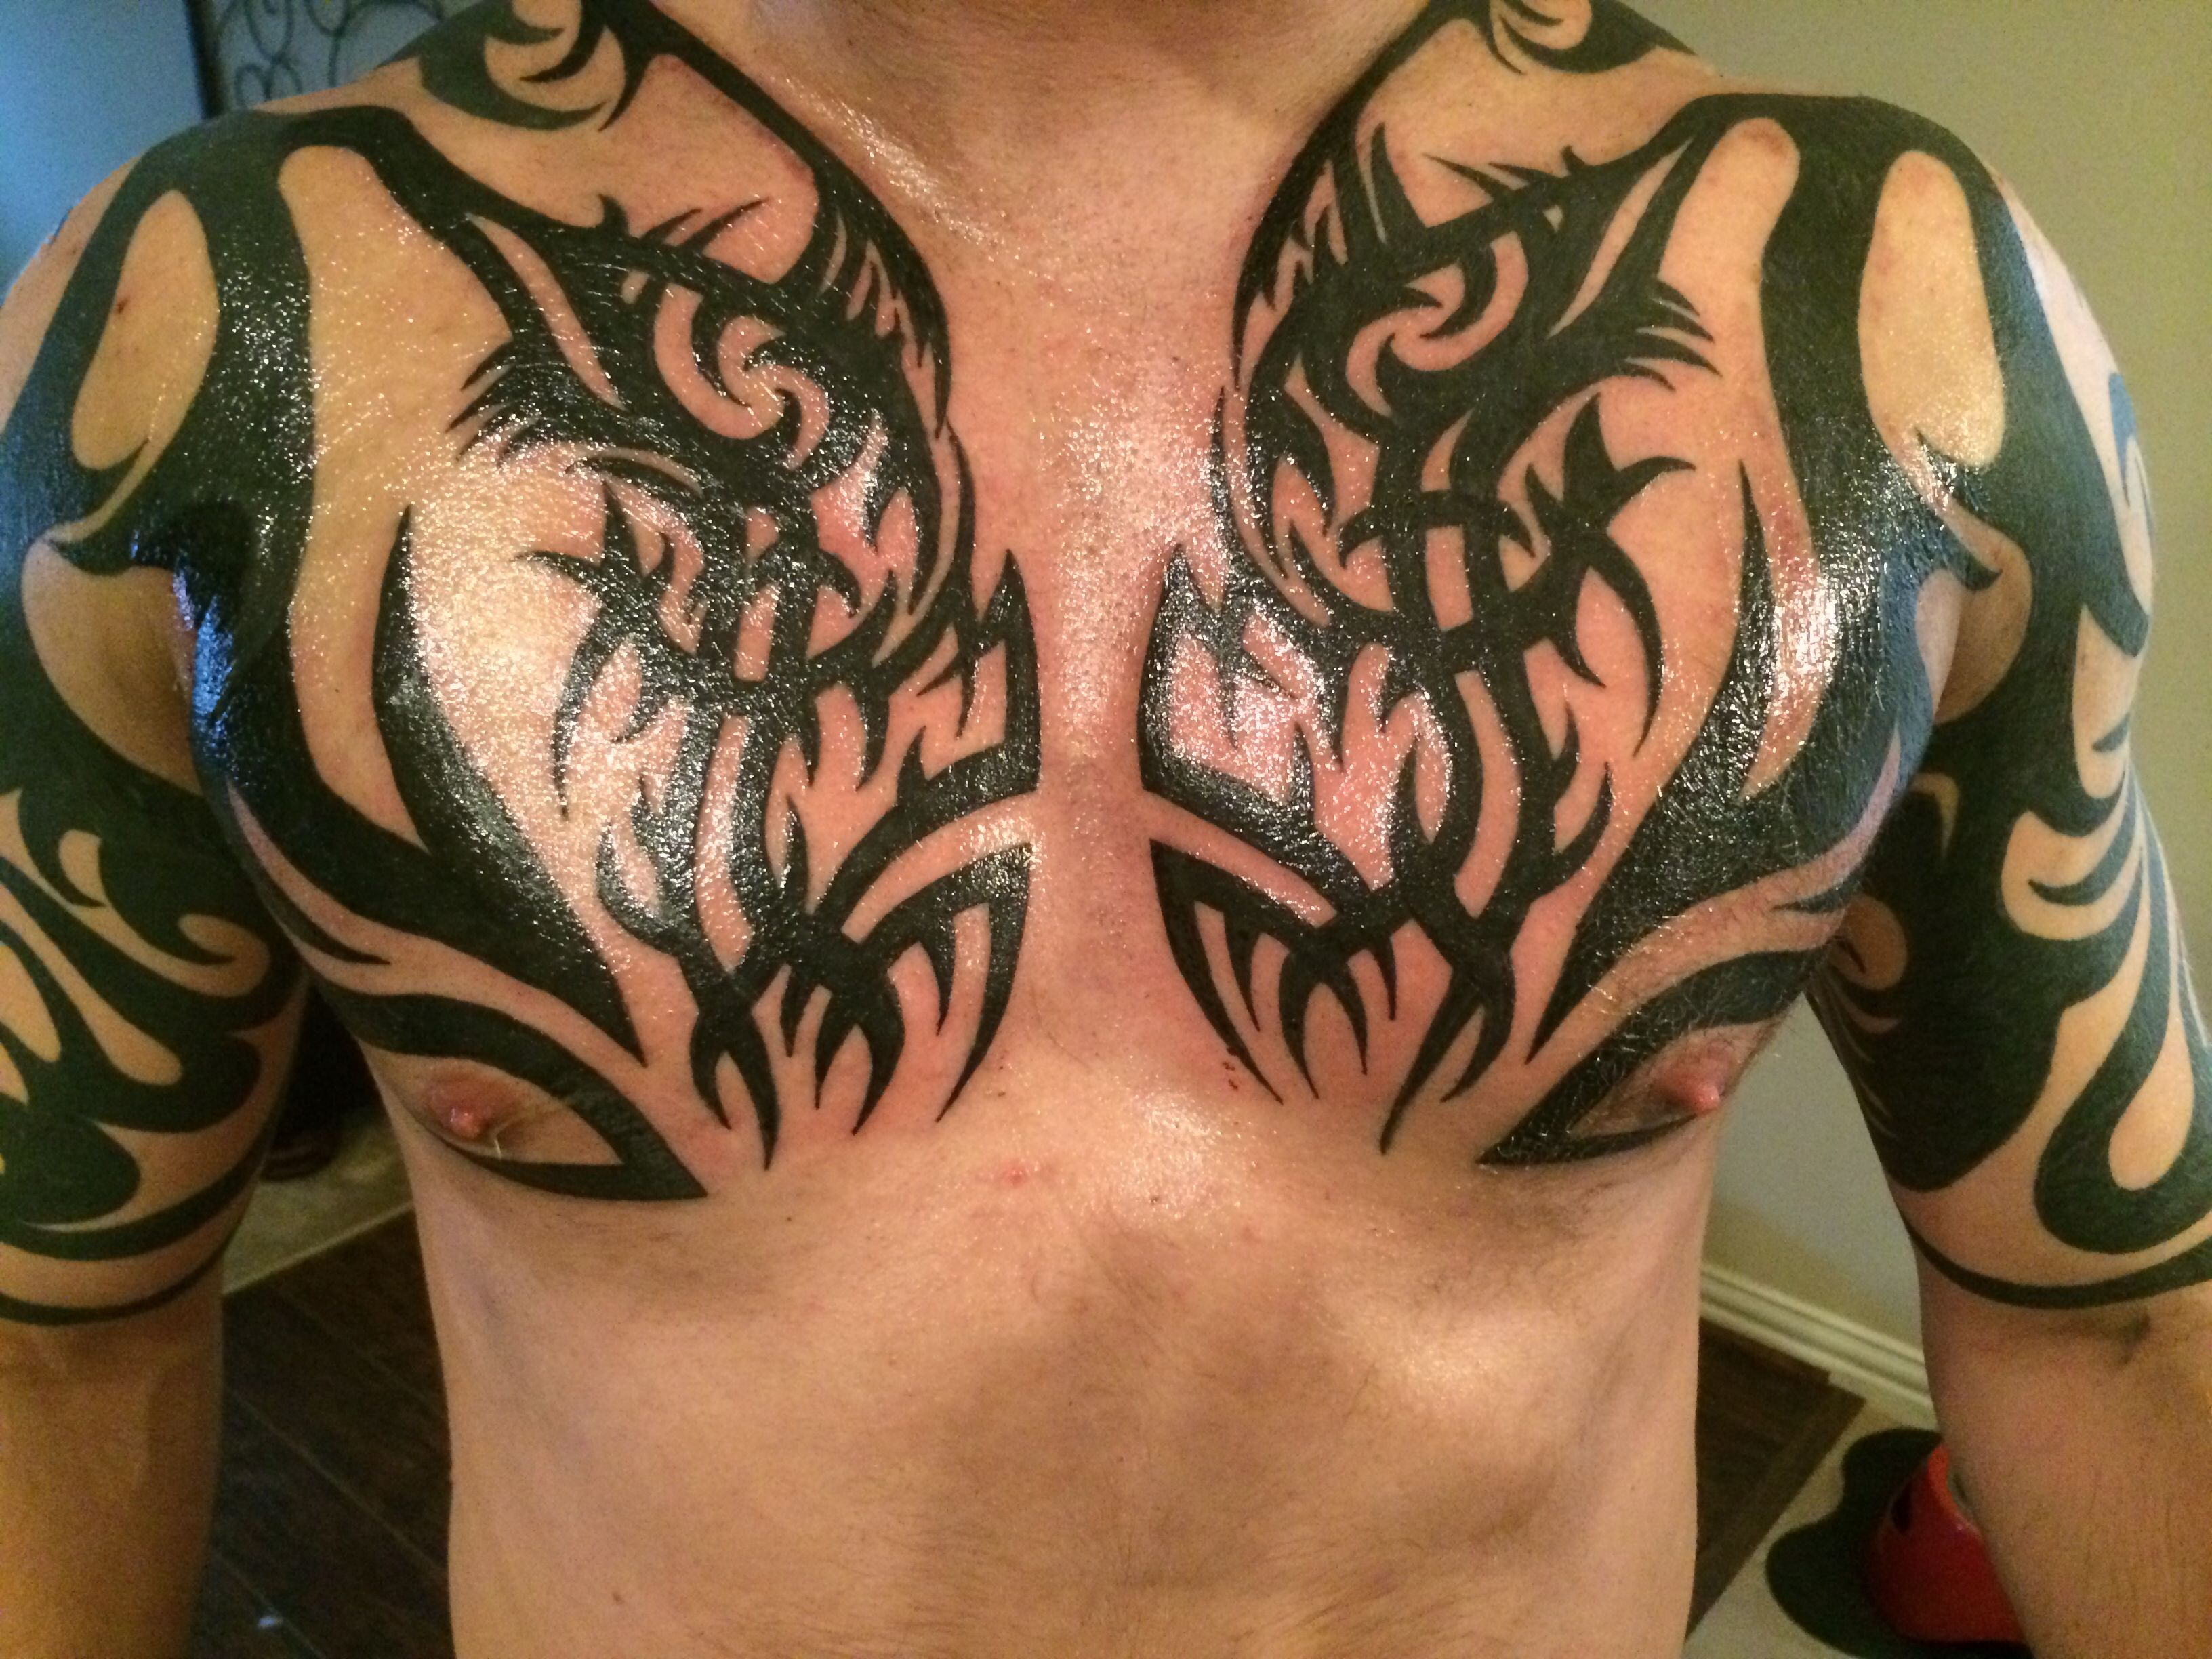 Tribal tattoo cover up fix completed tattoos pinterest for Tribal tattoos for cover up